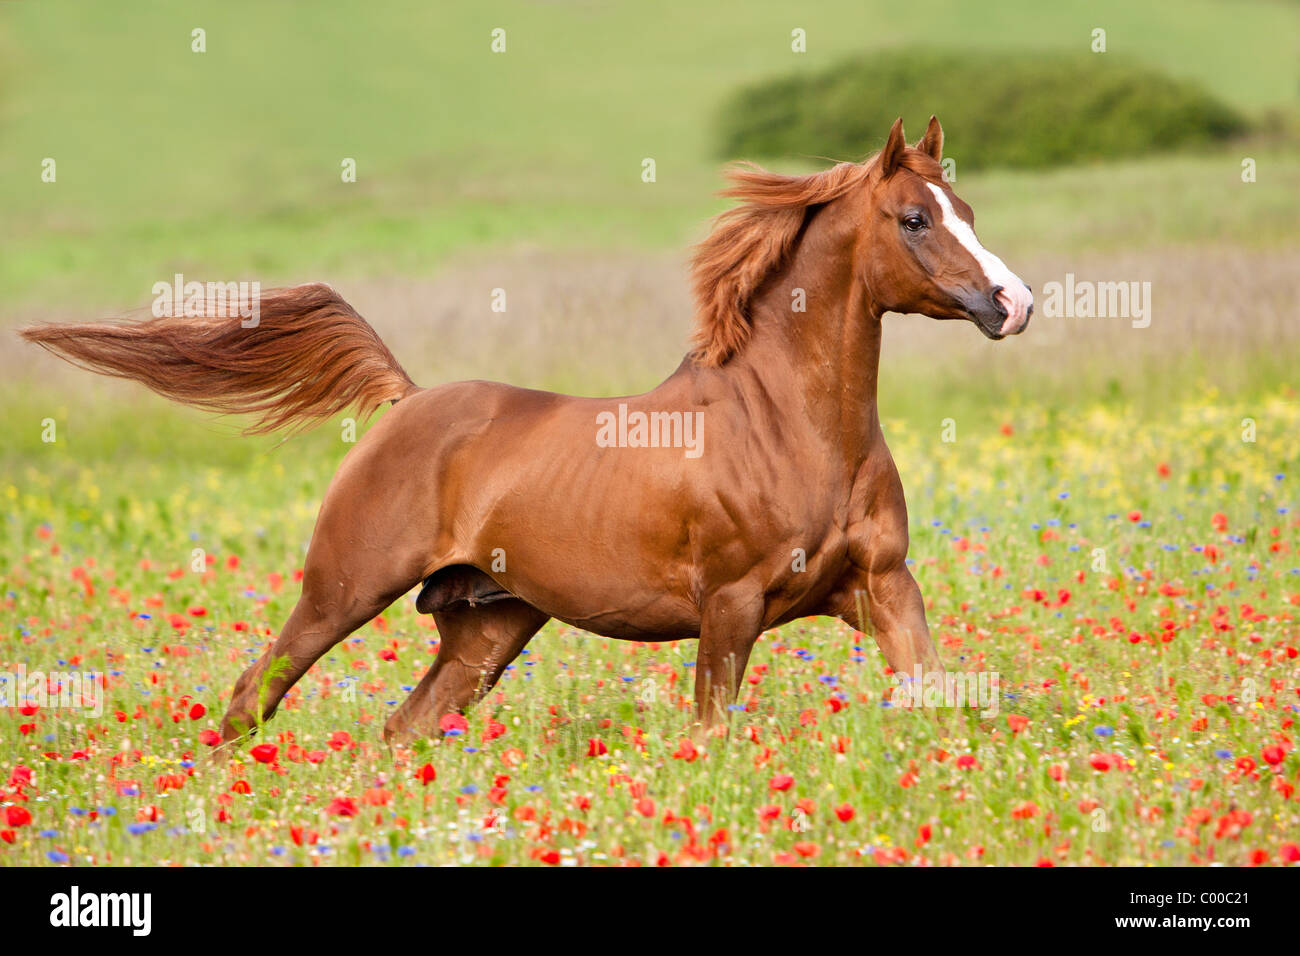 Arabian Horses Running High Resolution Stock Photography And Images Alamy